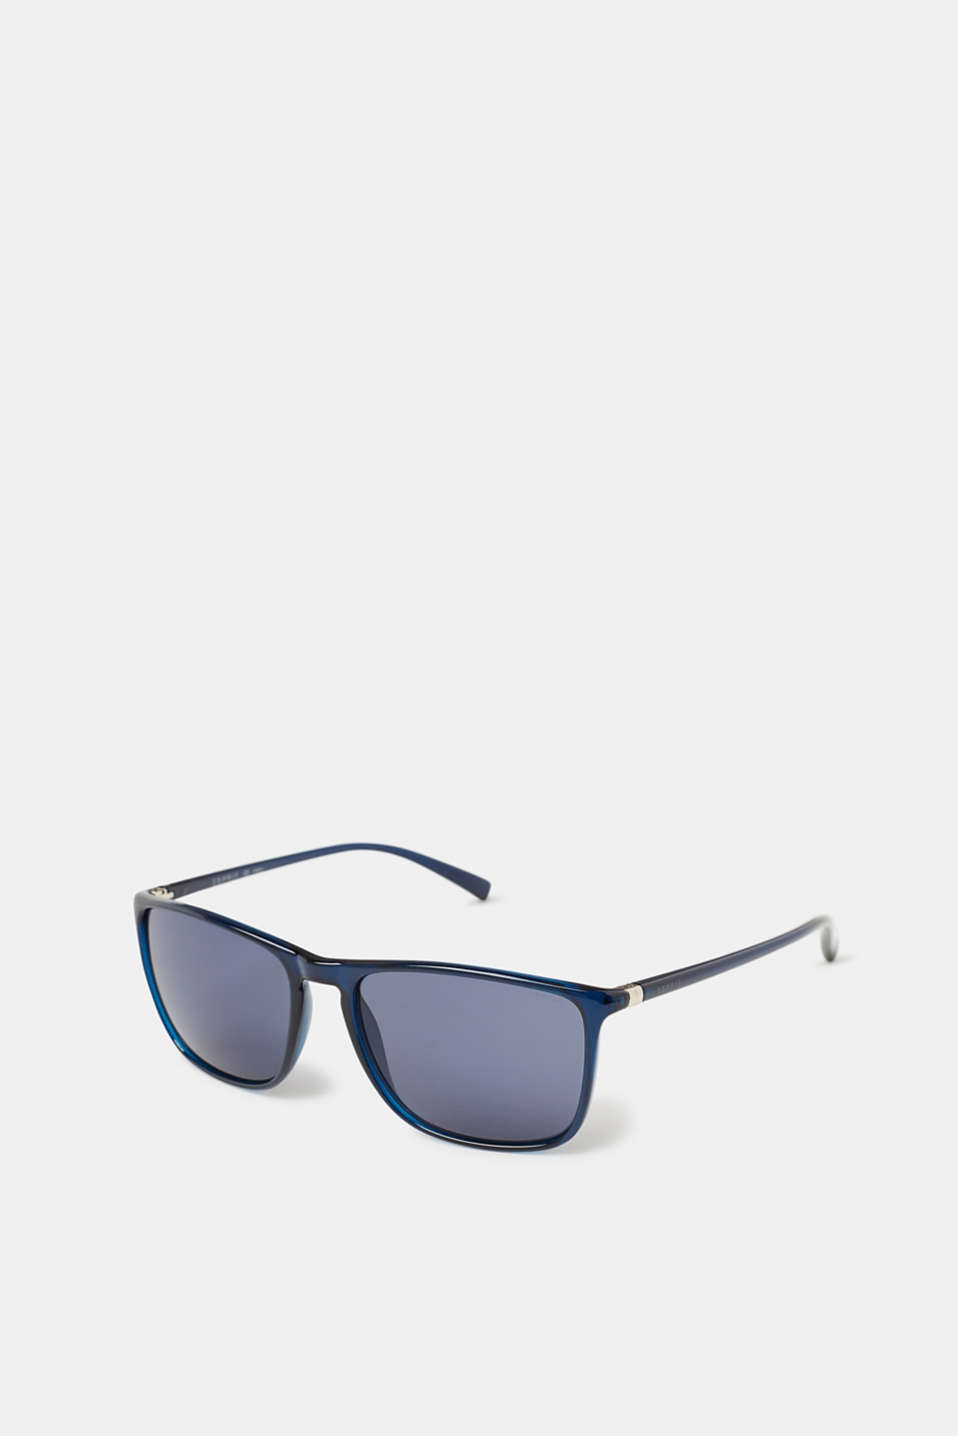 Esprit - Sunglasses in a minimalist look